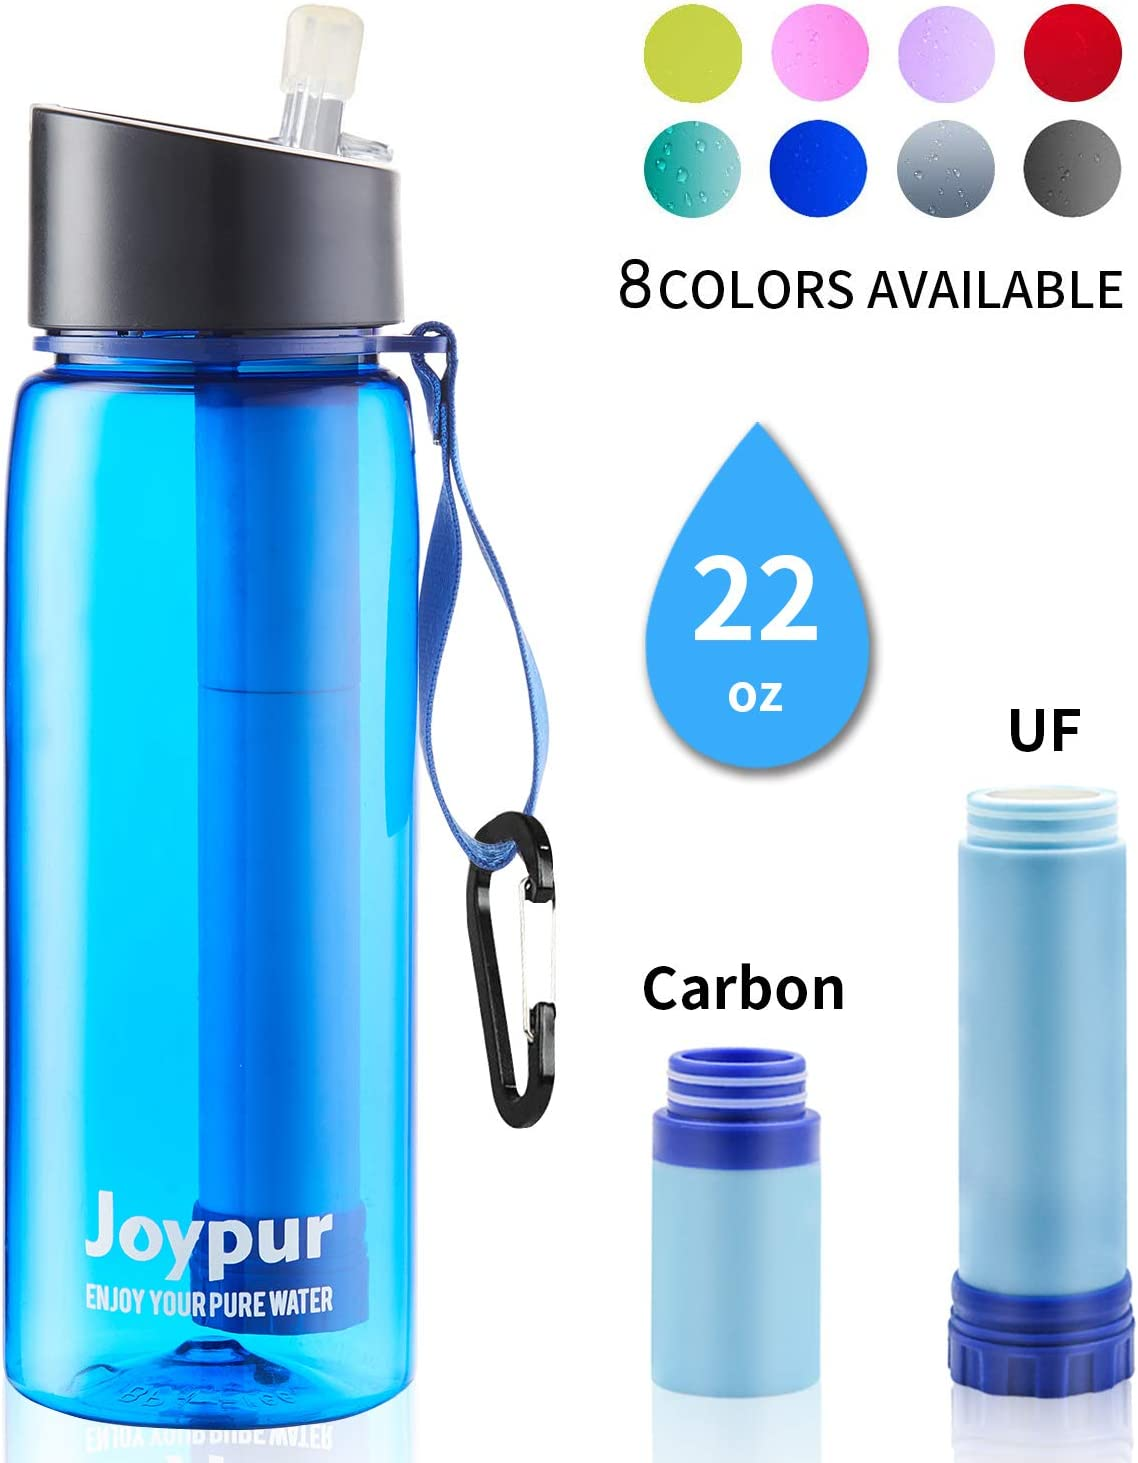 joypur Water Filter Bottle, BPA Free Water Purifier with 4-Stage Intergrated Filter Straw for Camping, Hiking, Travel Abroad, Emergency, Backpacking, Survival with Replaceable Filter, Blue (1pack) : Sports & Outdoors